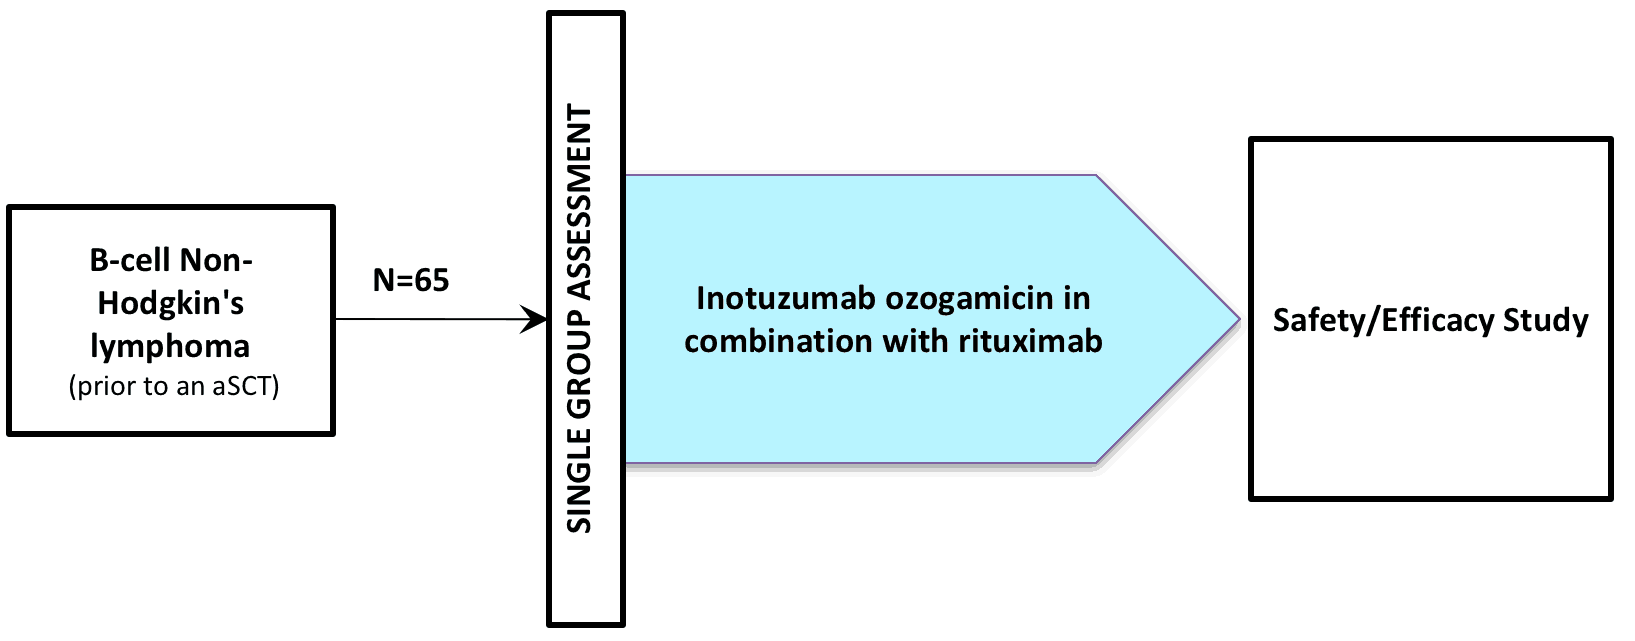 NCT00867087 (CLINICAL TRIAL / INOTUZUMAB OZOGAMYCIN / CMC-544)